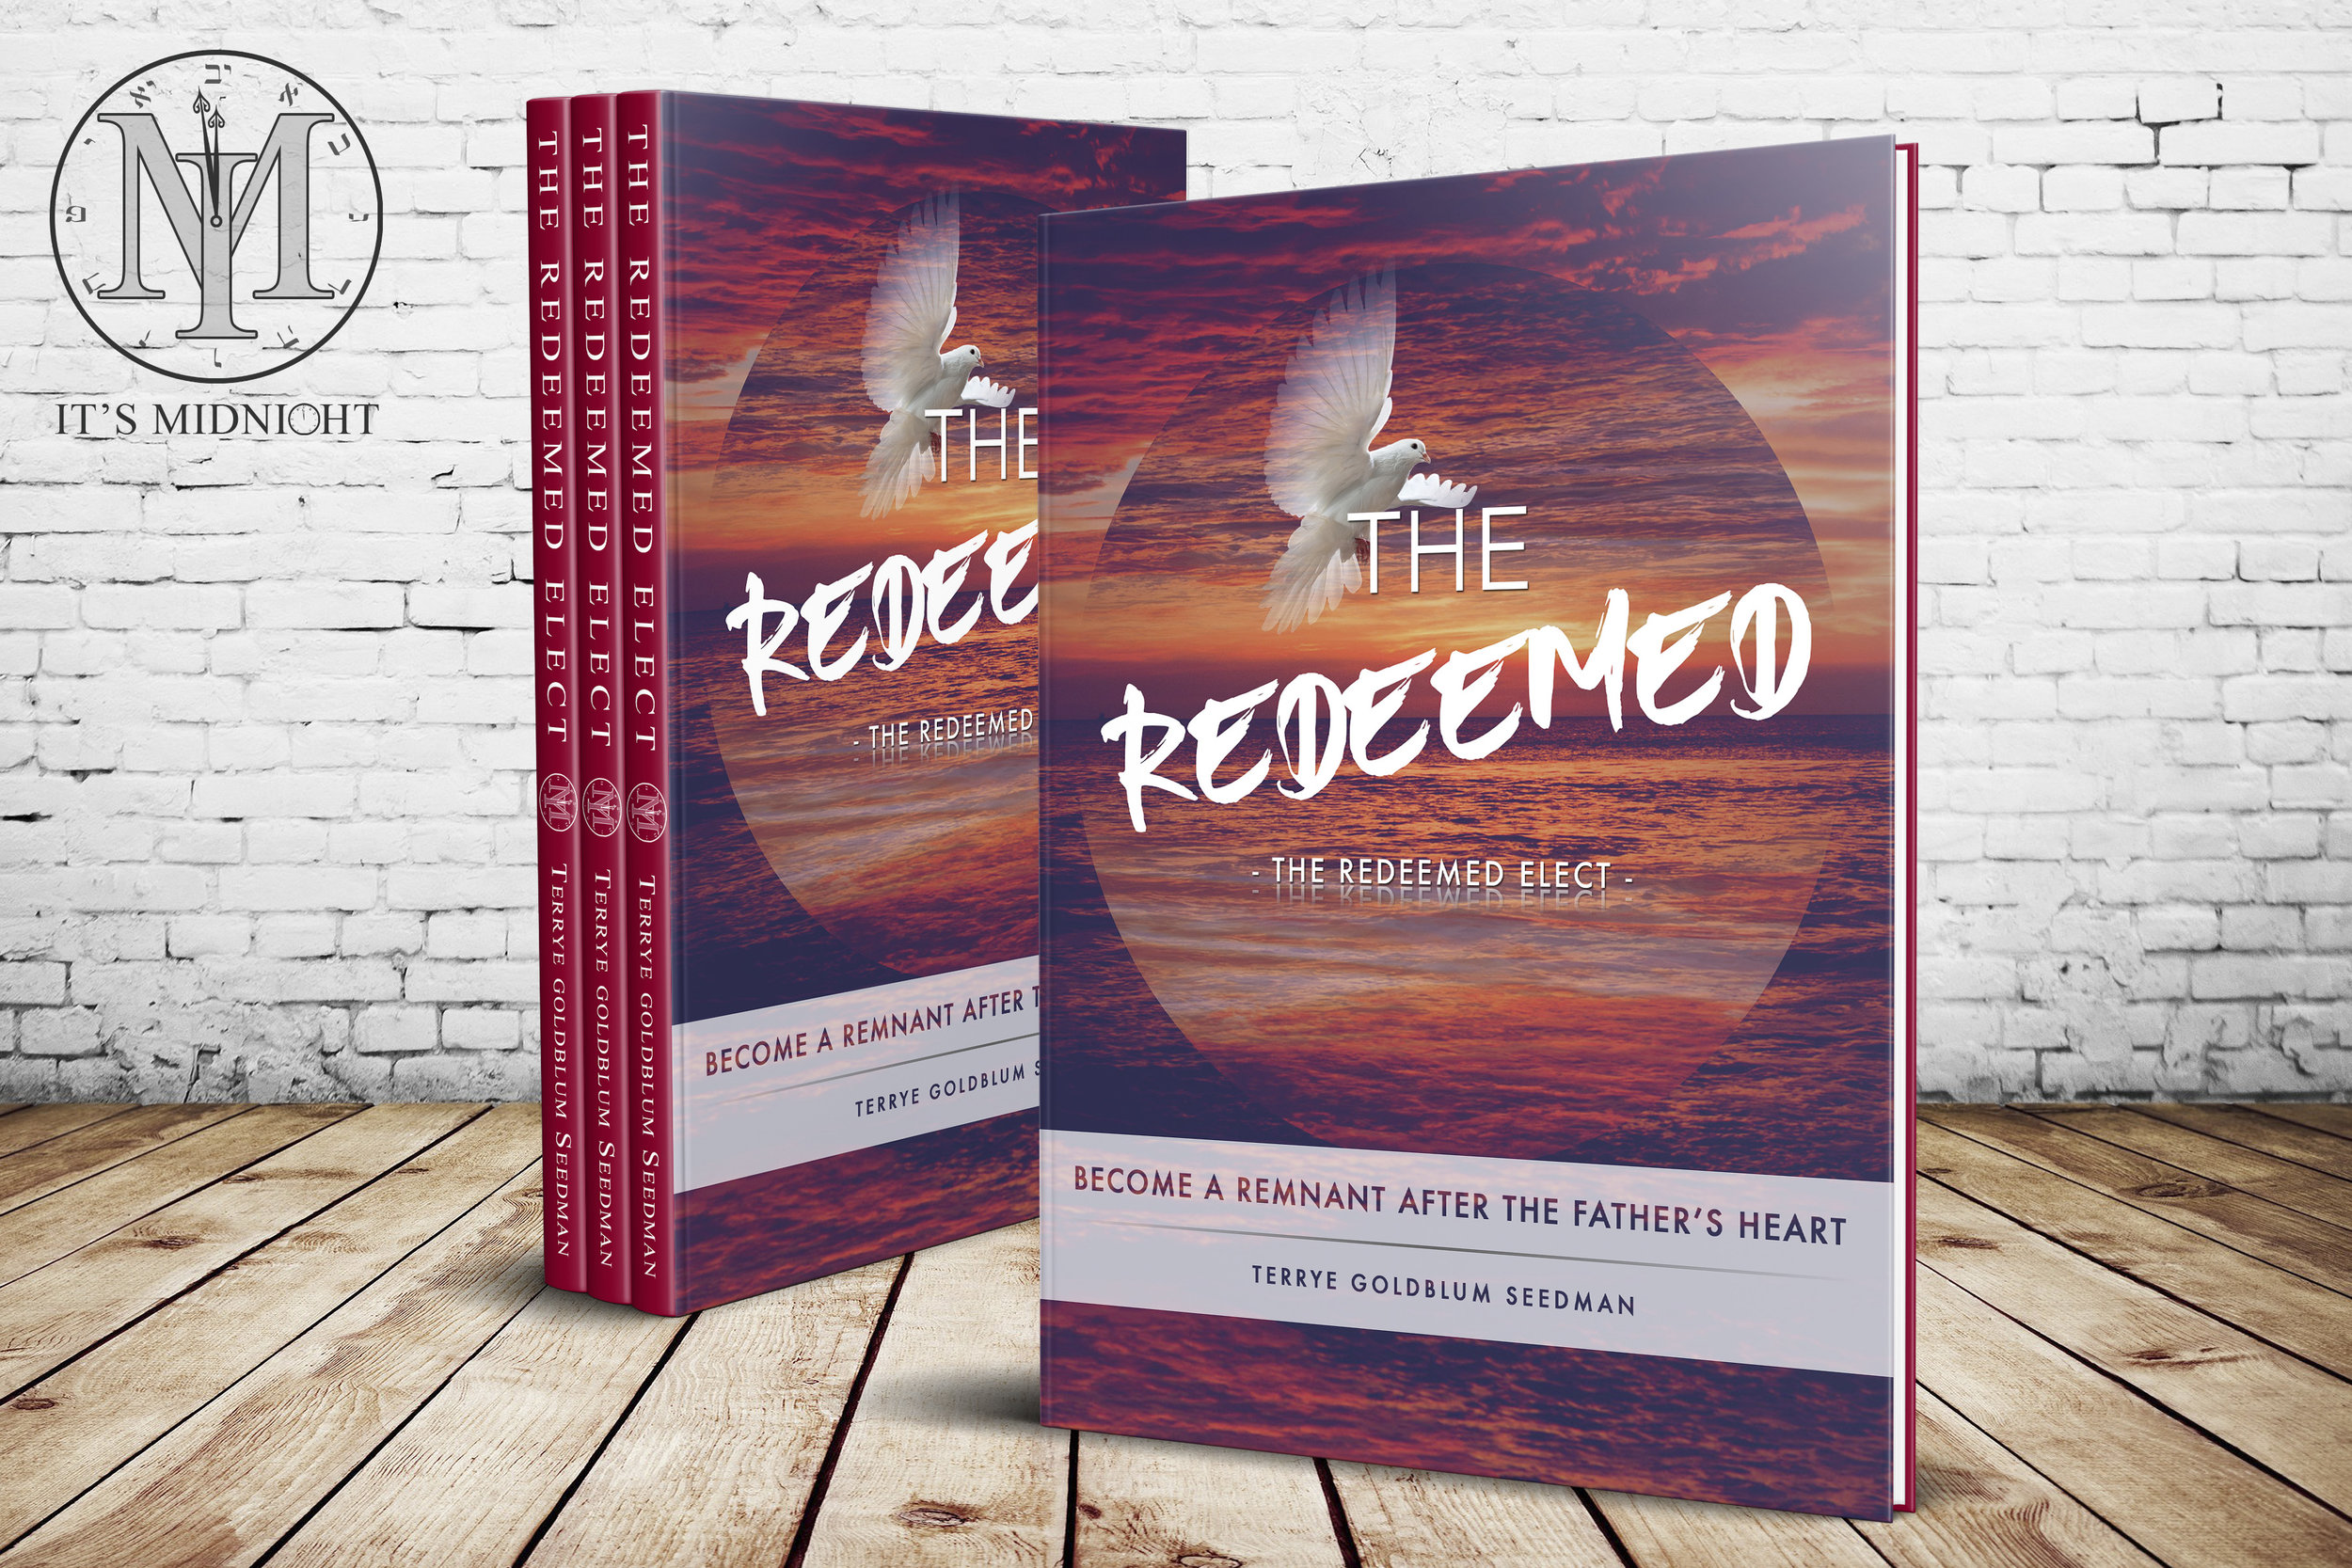 The Redeemed Elect